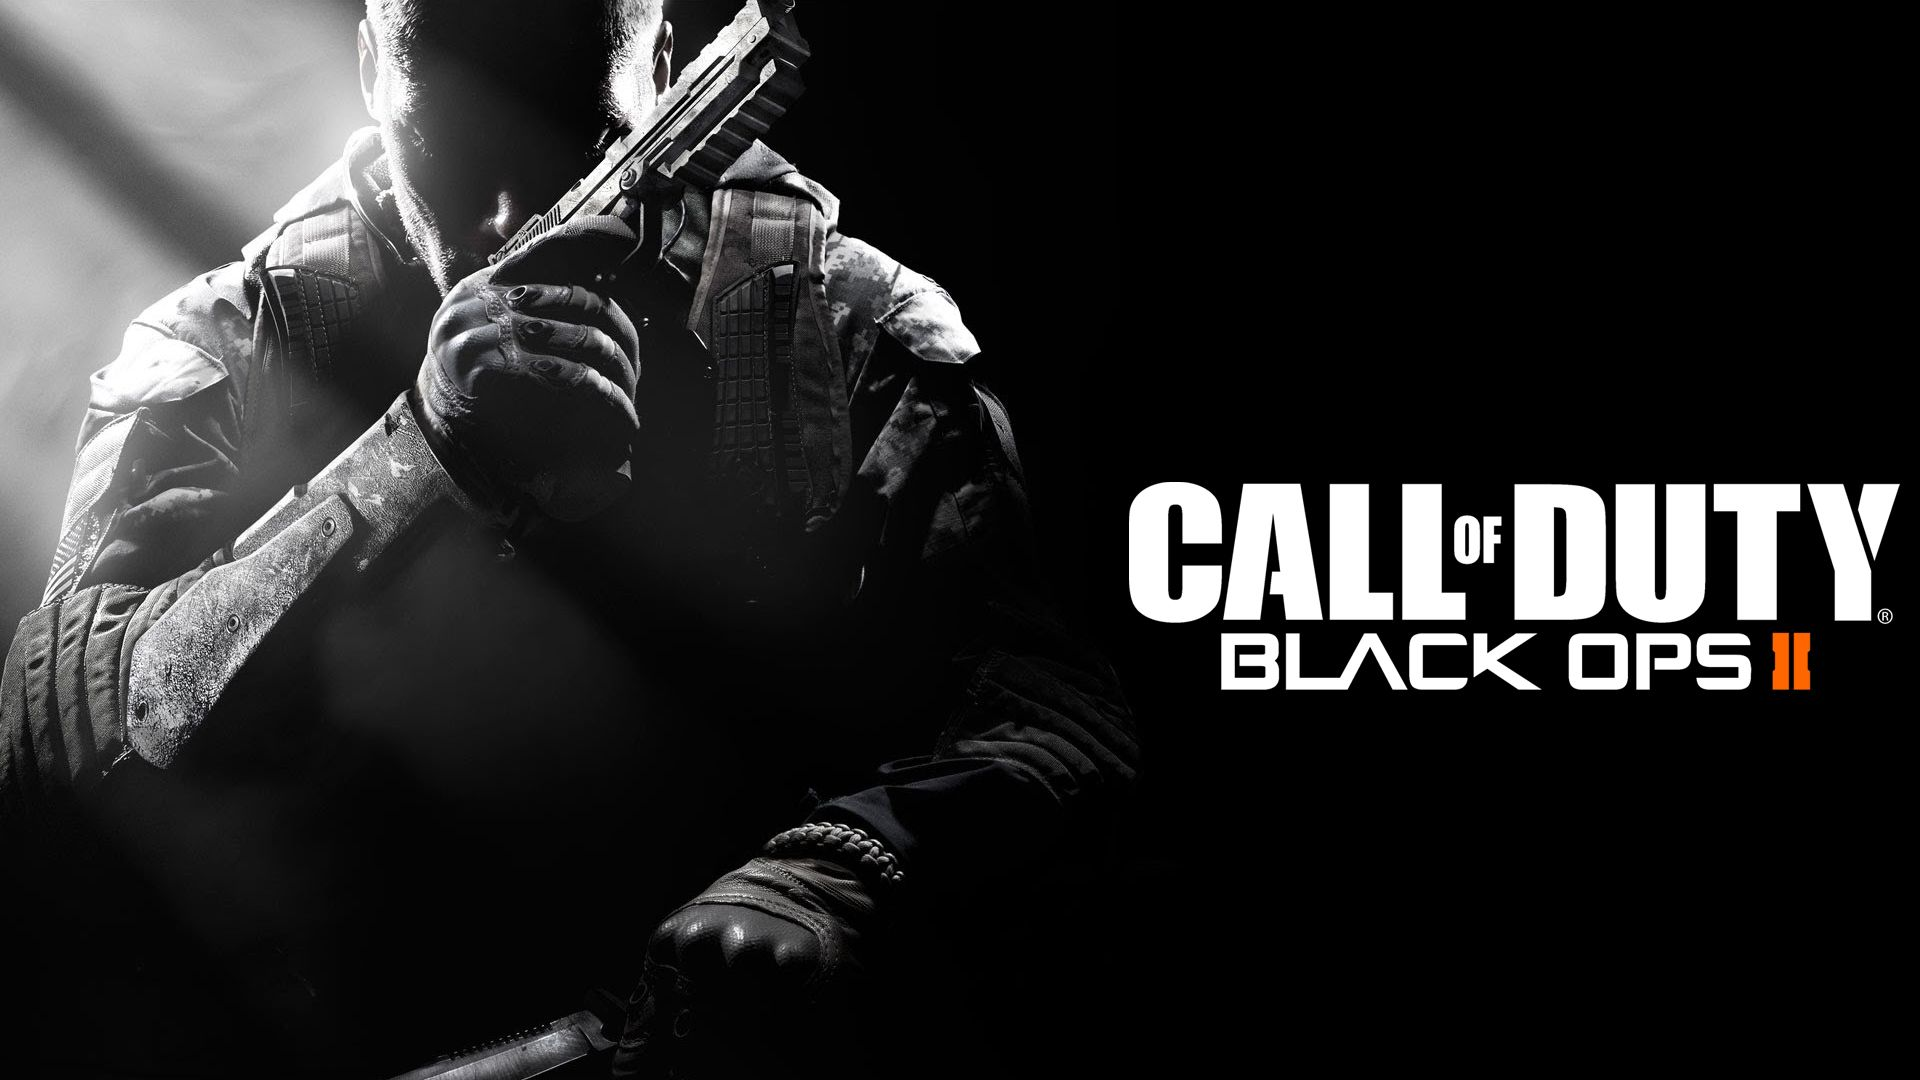 Call of Duty: Black Ops II renunta la suportul pentru Windows XP